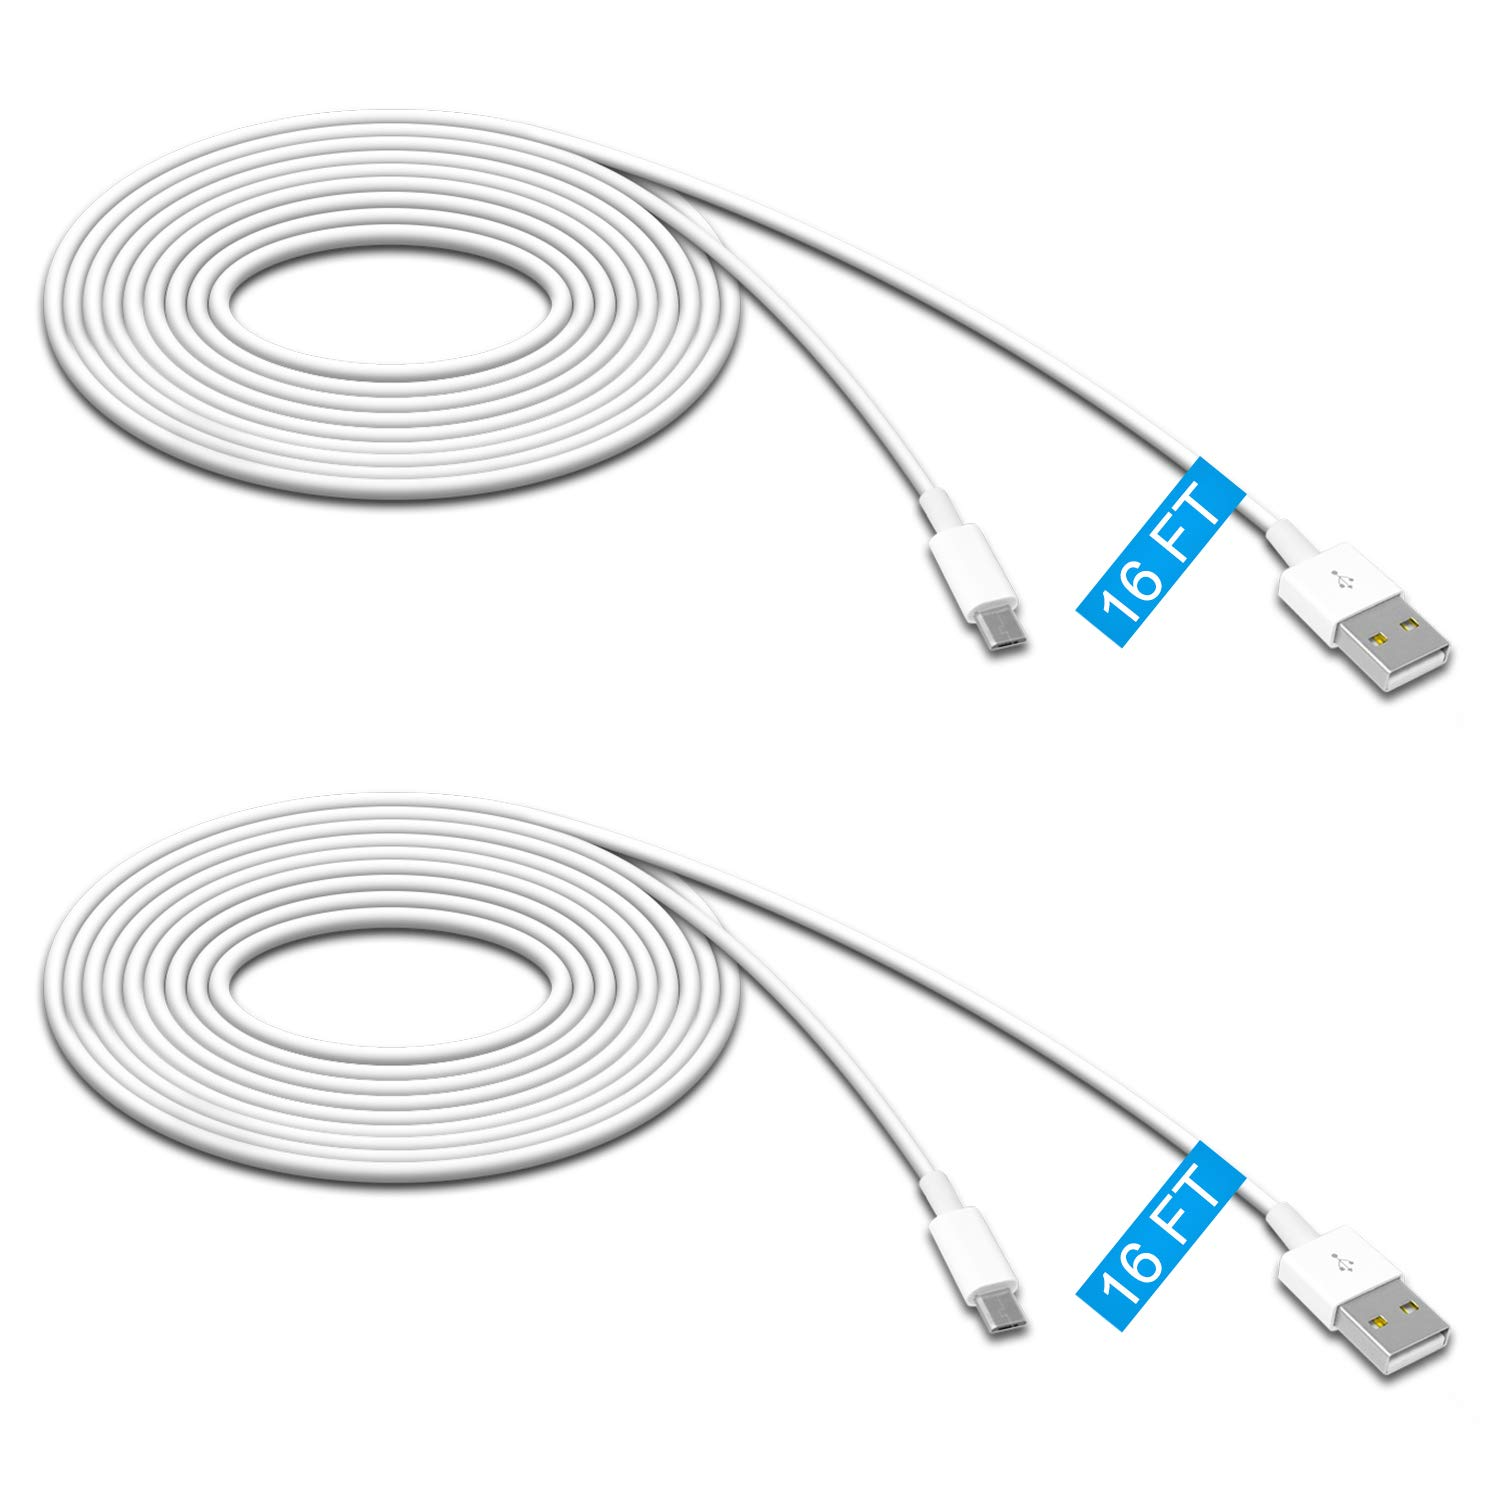 2 Pack 16.4FT Power Extension Cable for Wyze Cam Pan/WyzeCam/ Kasa Cam/YI Dome Home Camera/Furbo Dog/Nest Cam/Arlo Q/Blink/Amazon Cloud Camera,USB to Micro USB Durable Charging and Data Sync Cord